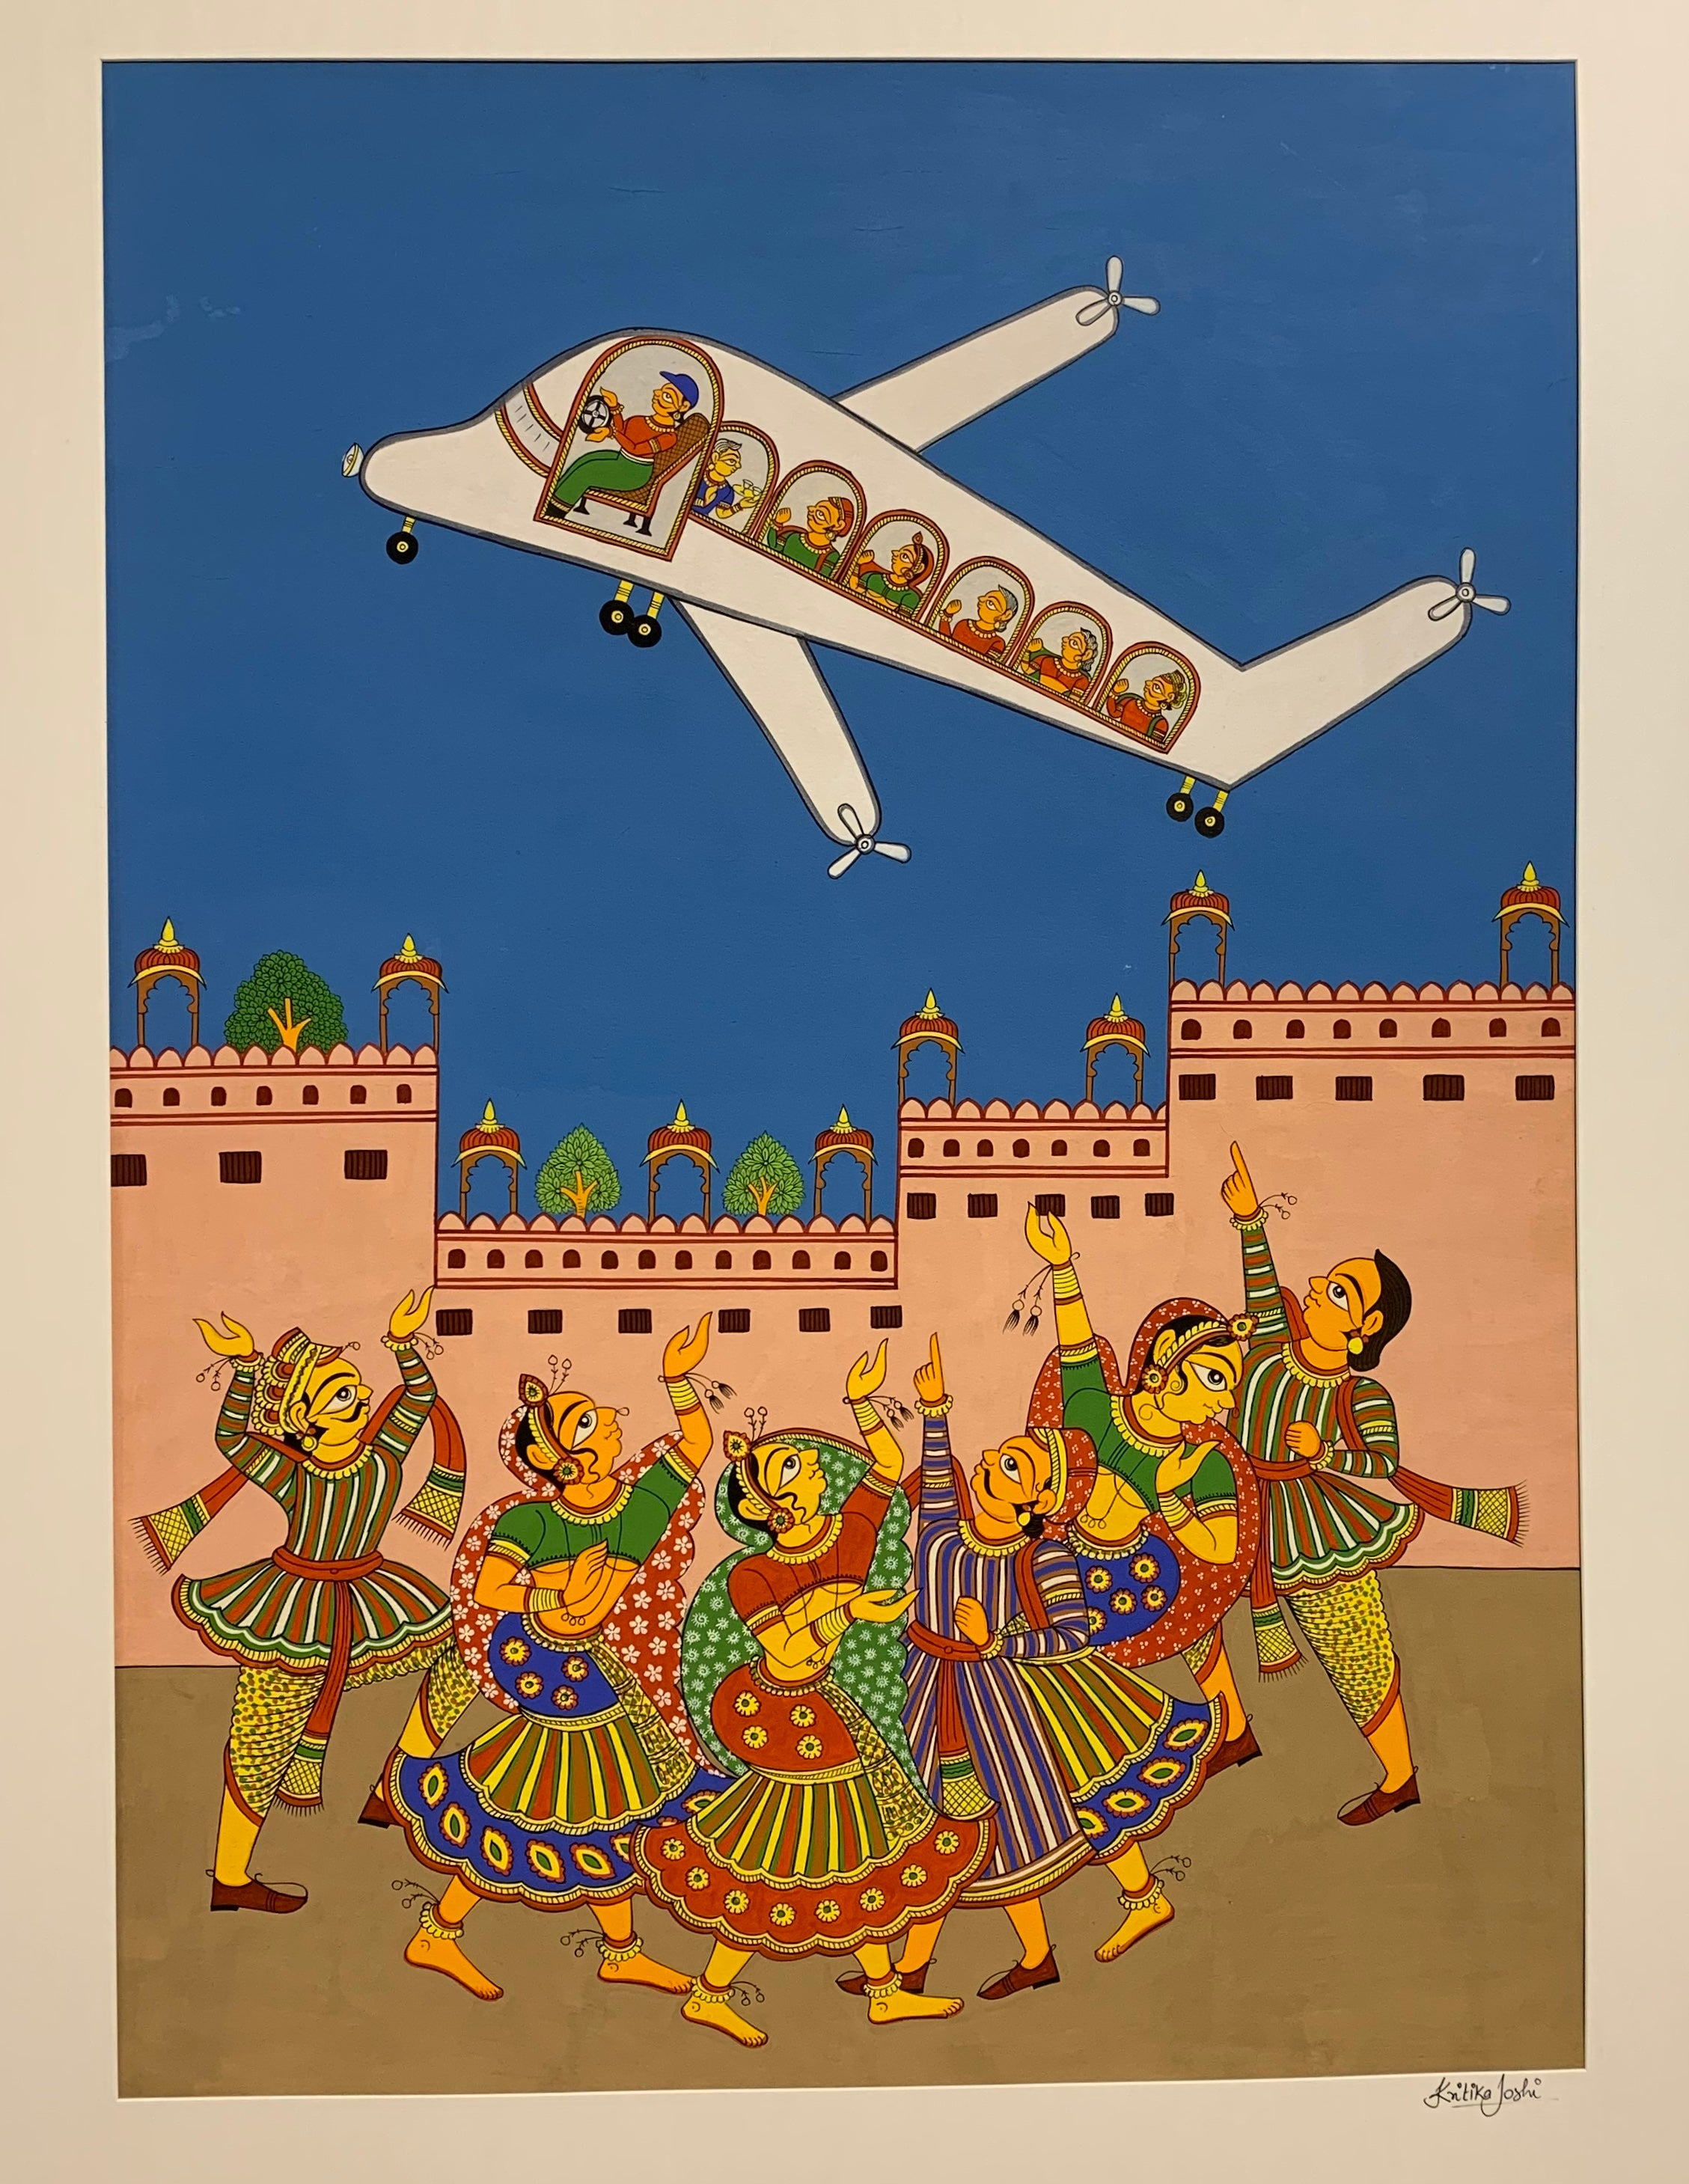 The Aeroplane: PHAD PAINTING BY KRITIKA JOSHI